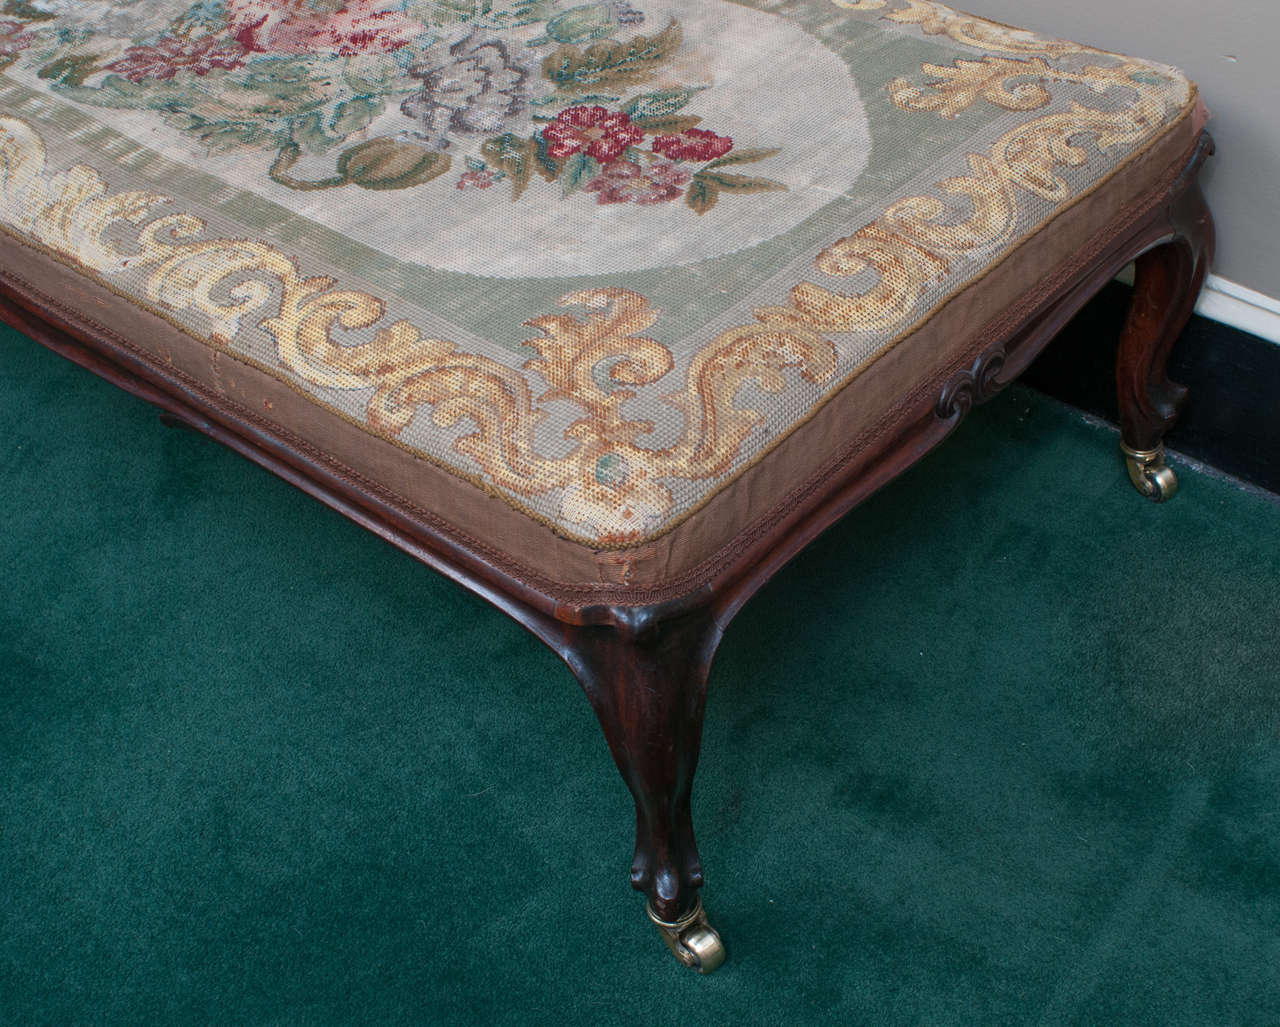 English Mid-19th Century Mahogany Bench with Old Needlepoint, England, circa 1840 For Sale